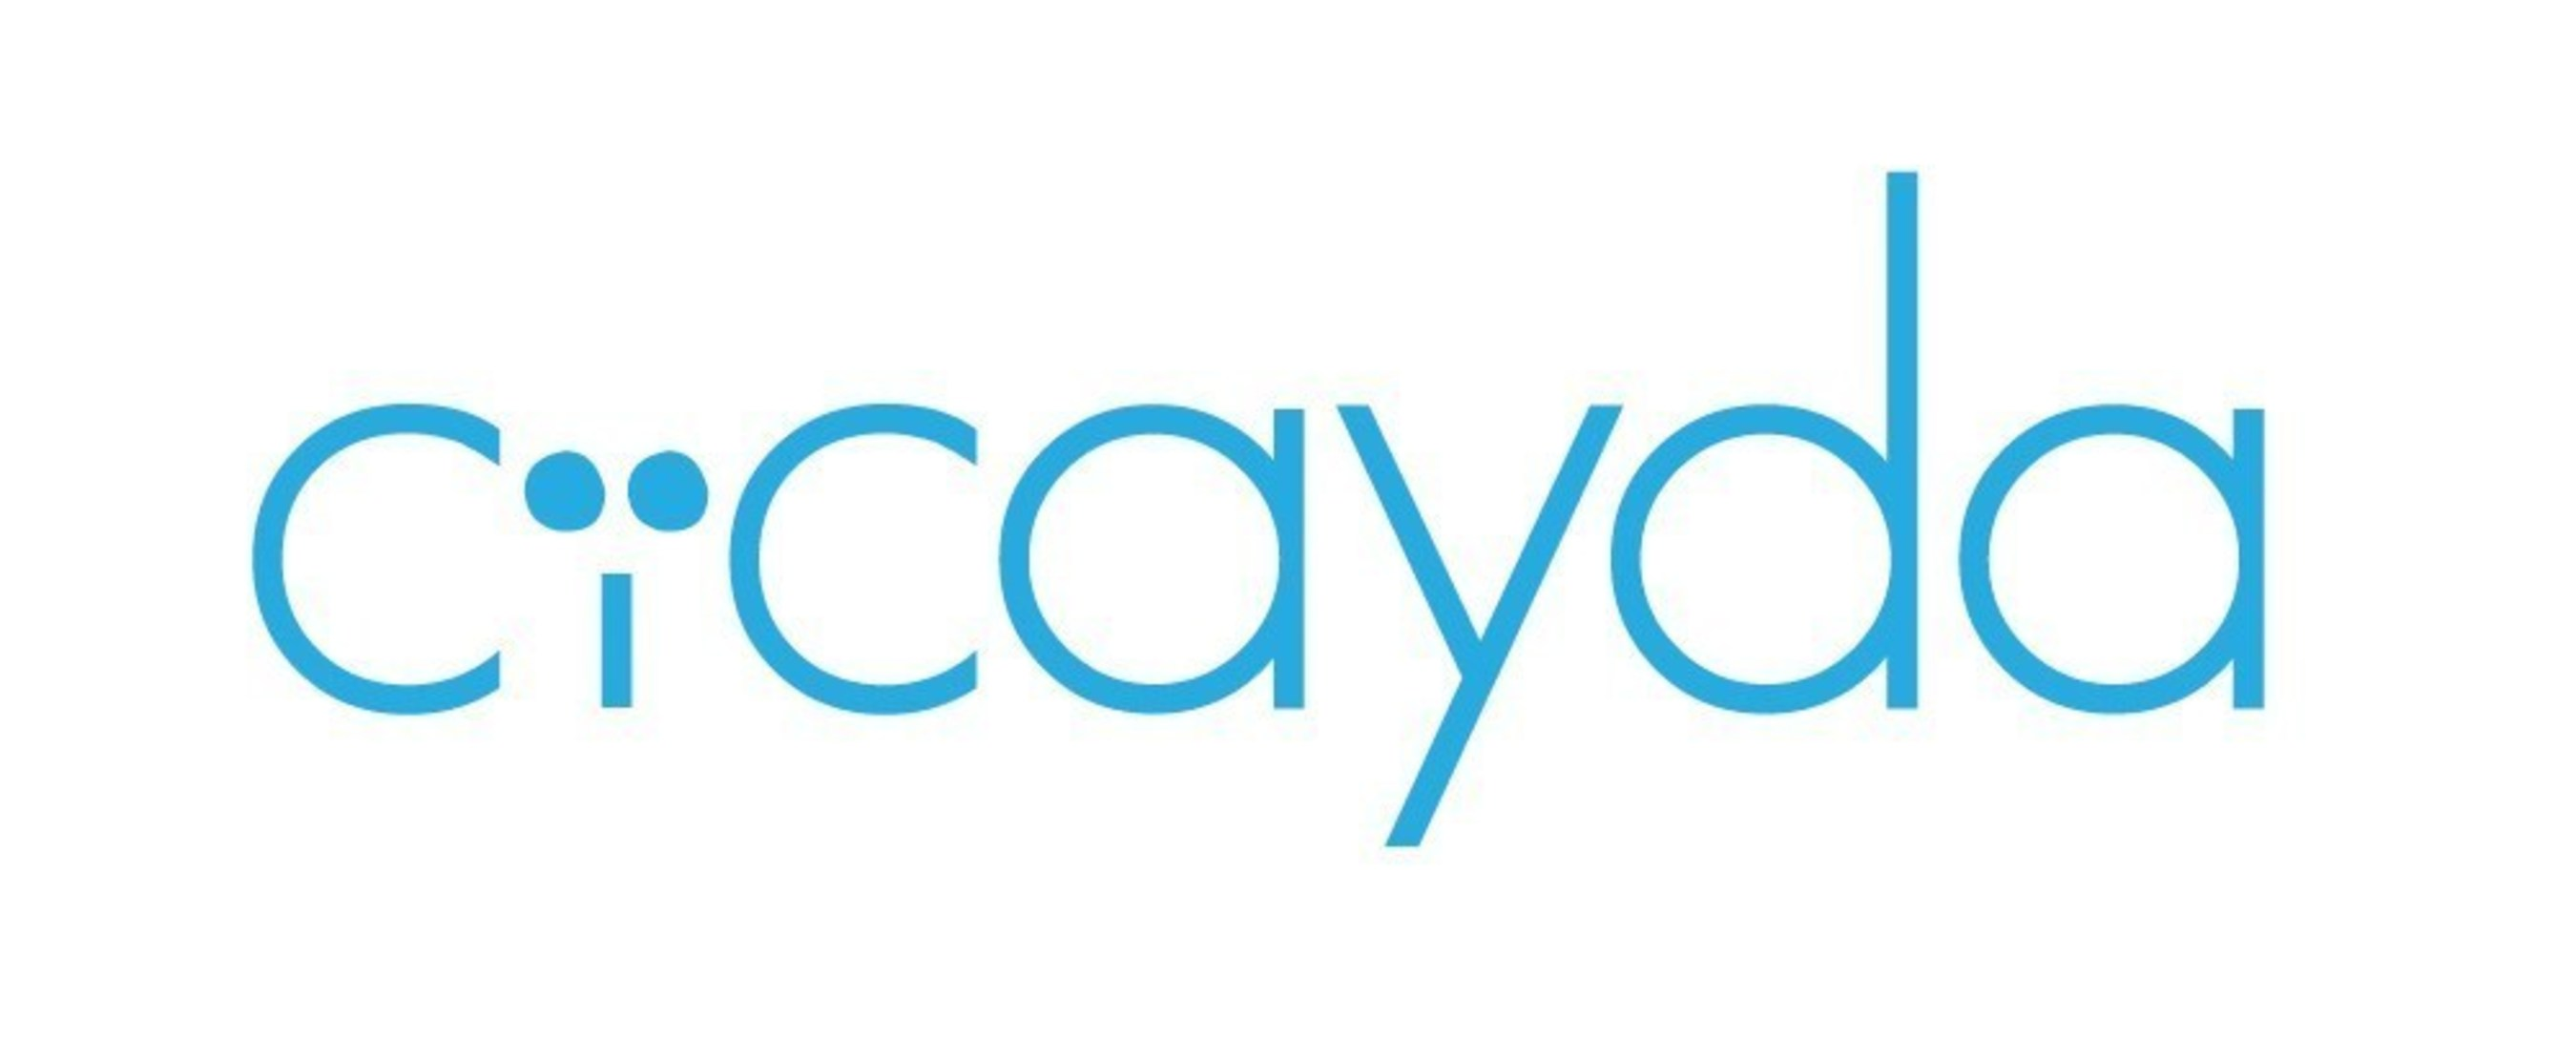 Cicayda Introduces New CSO, Aaron Vick